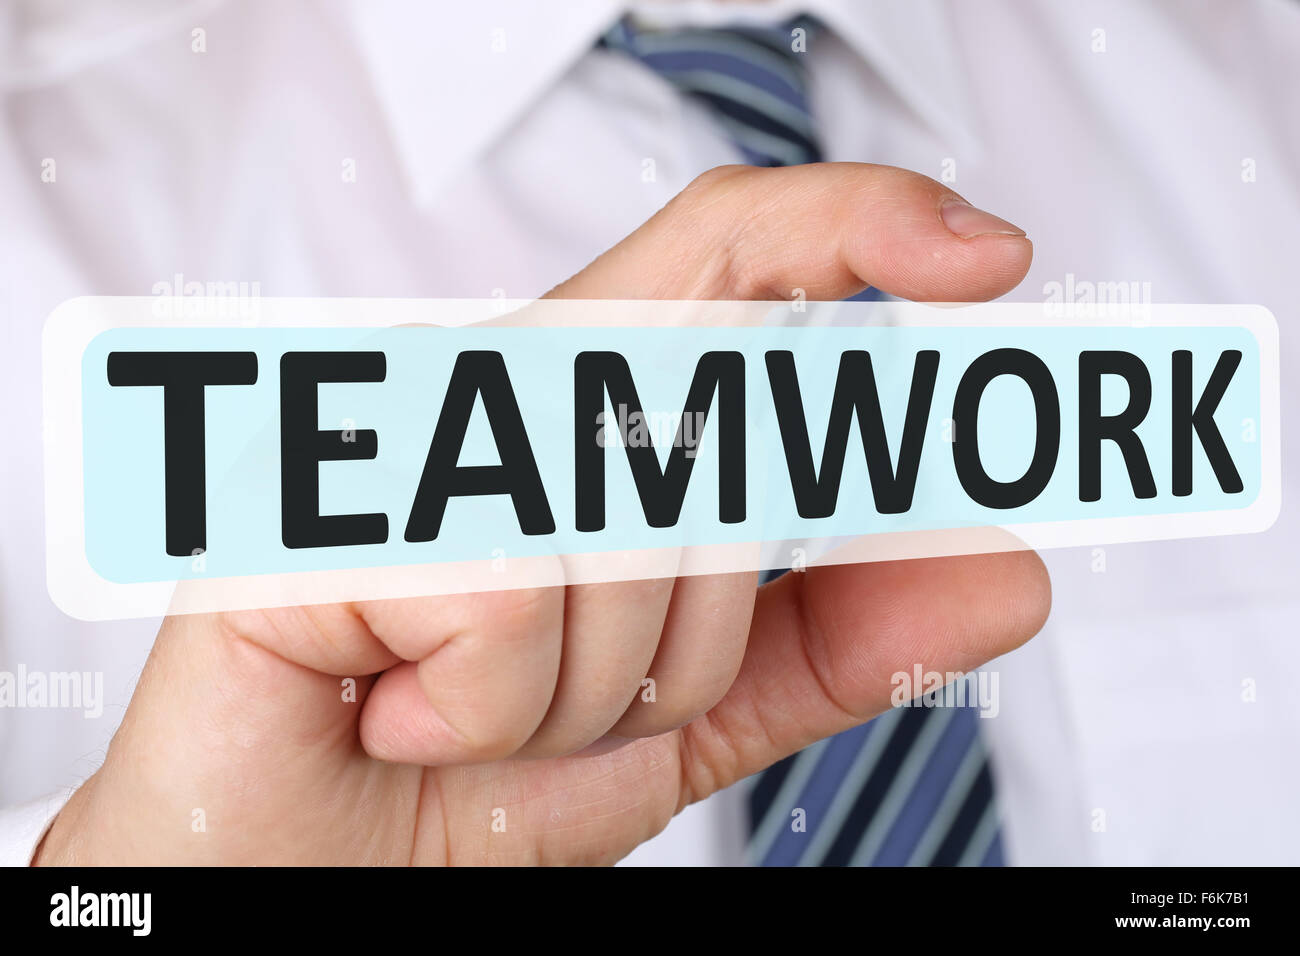 Businessman business concept with teamwork working together in a team - Stock Image